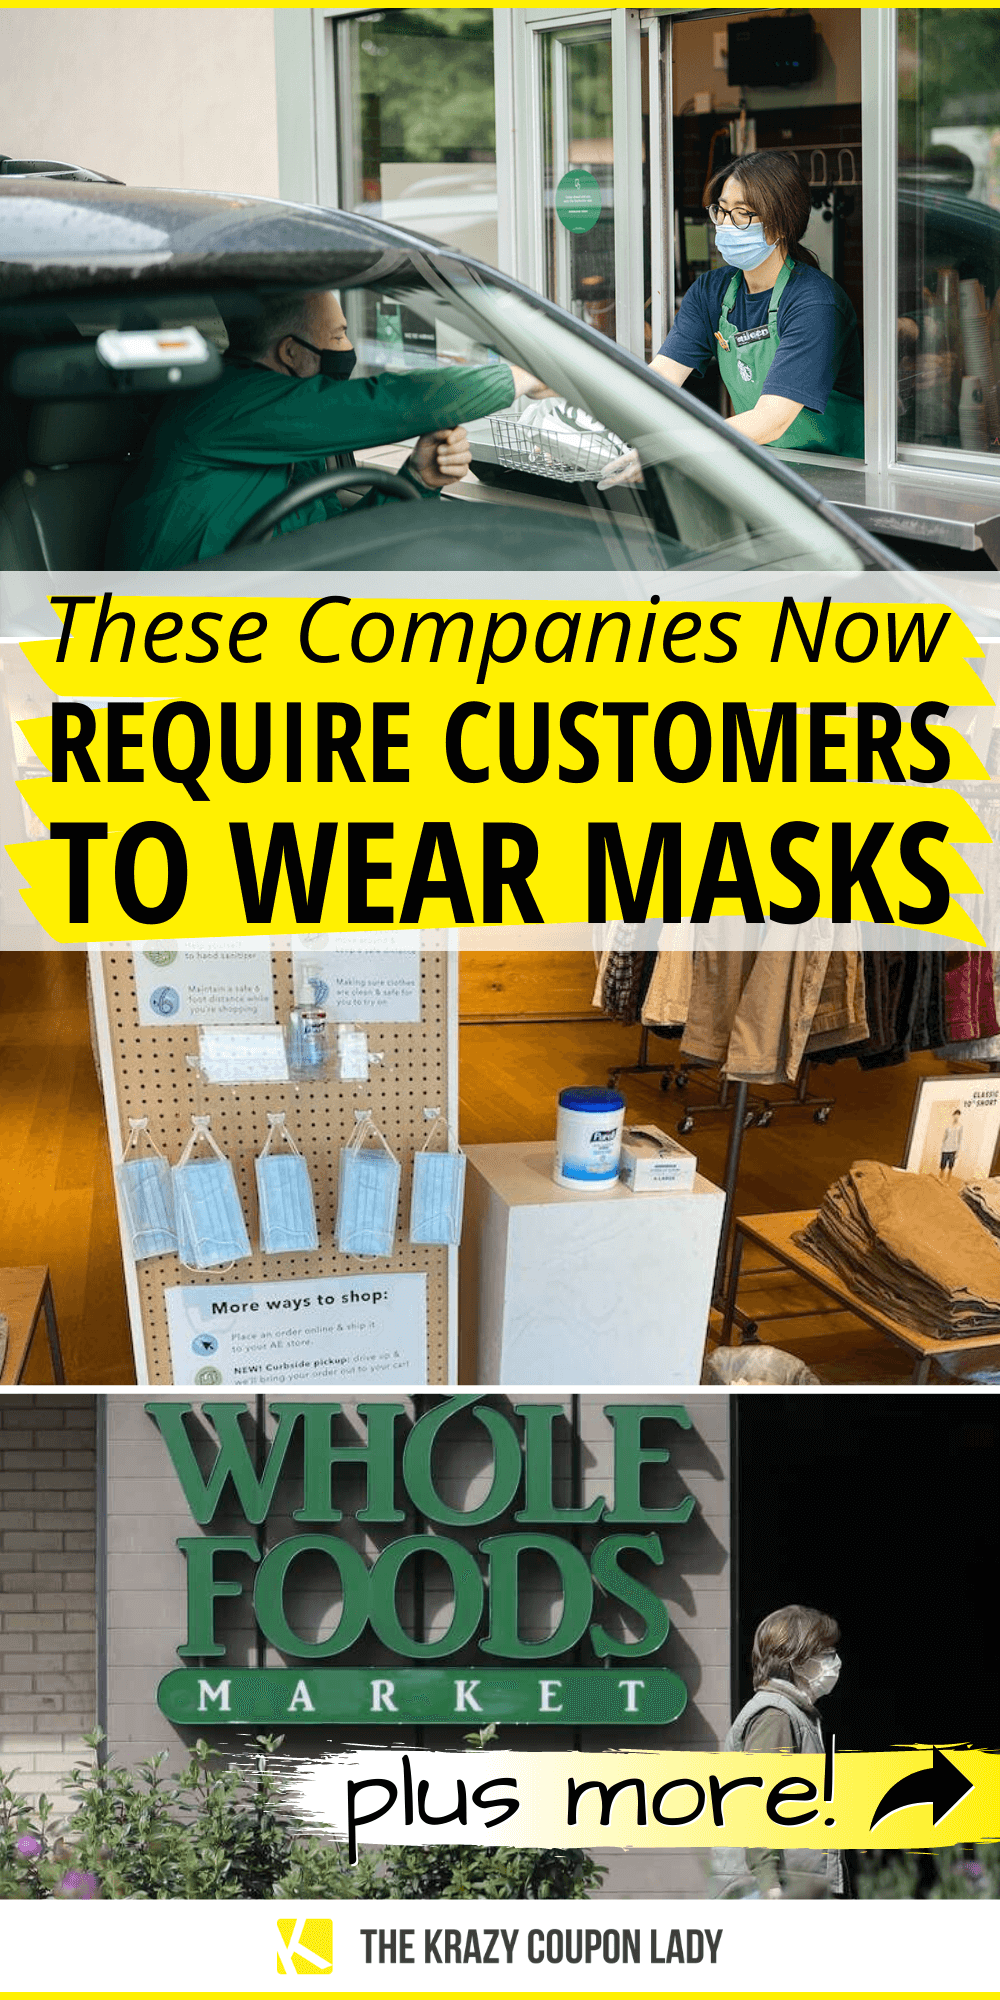 These Companies Now Require Customers to Wear Masks in